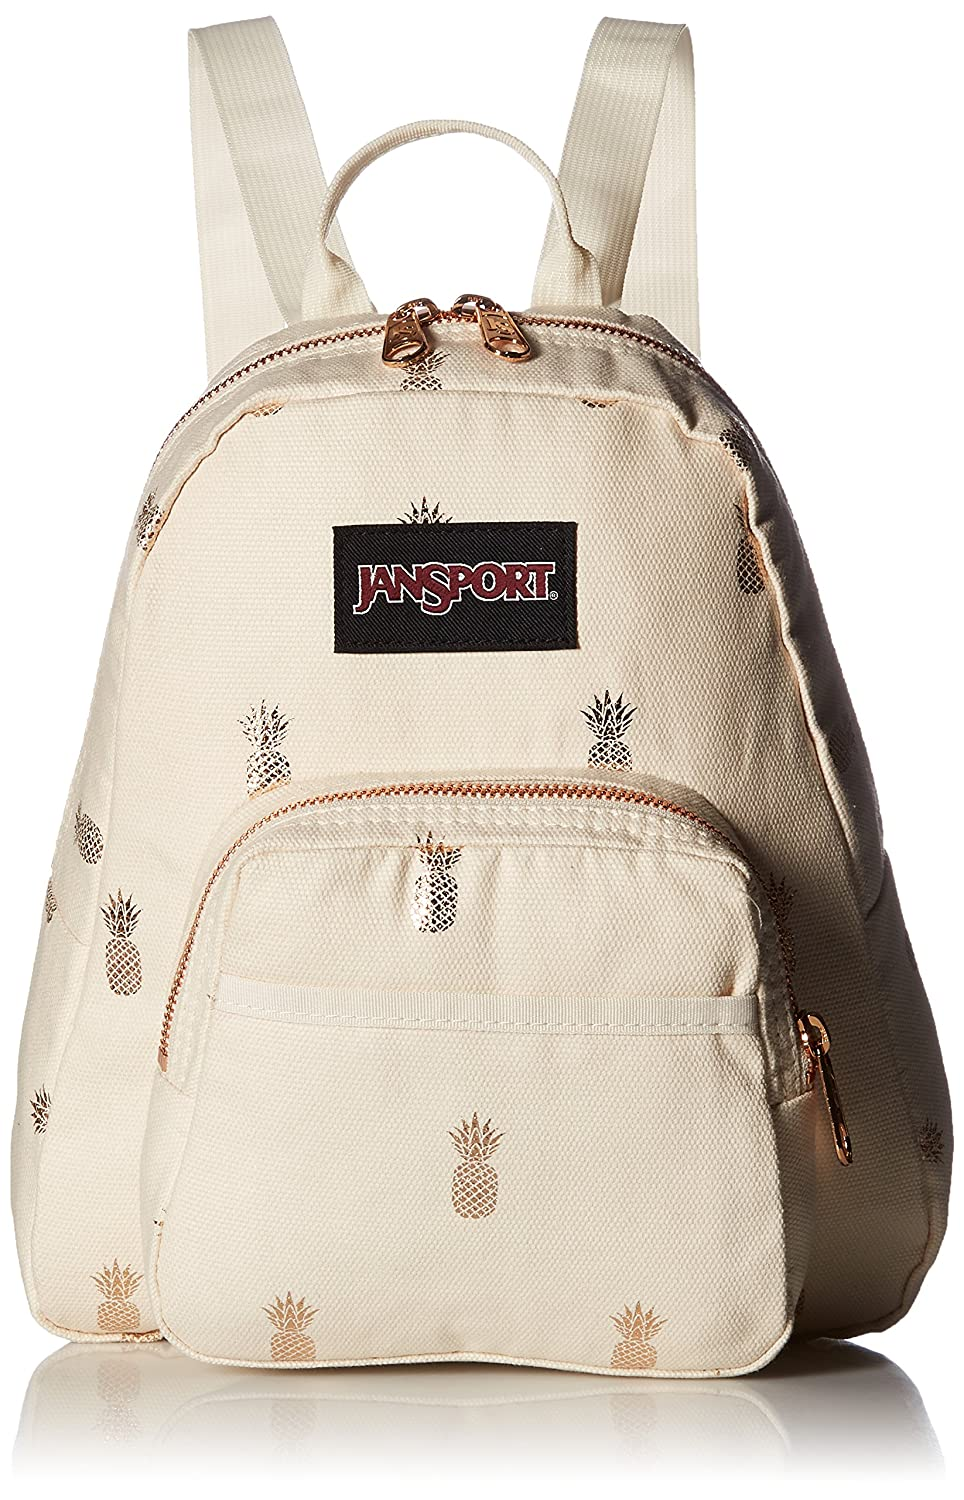 a025e08163d Amazon.com | JanSport Half Pint FX Mini Backpack - Isabella Pineapple |  Casual Daypacks